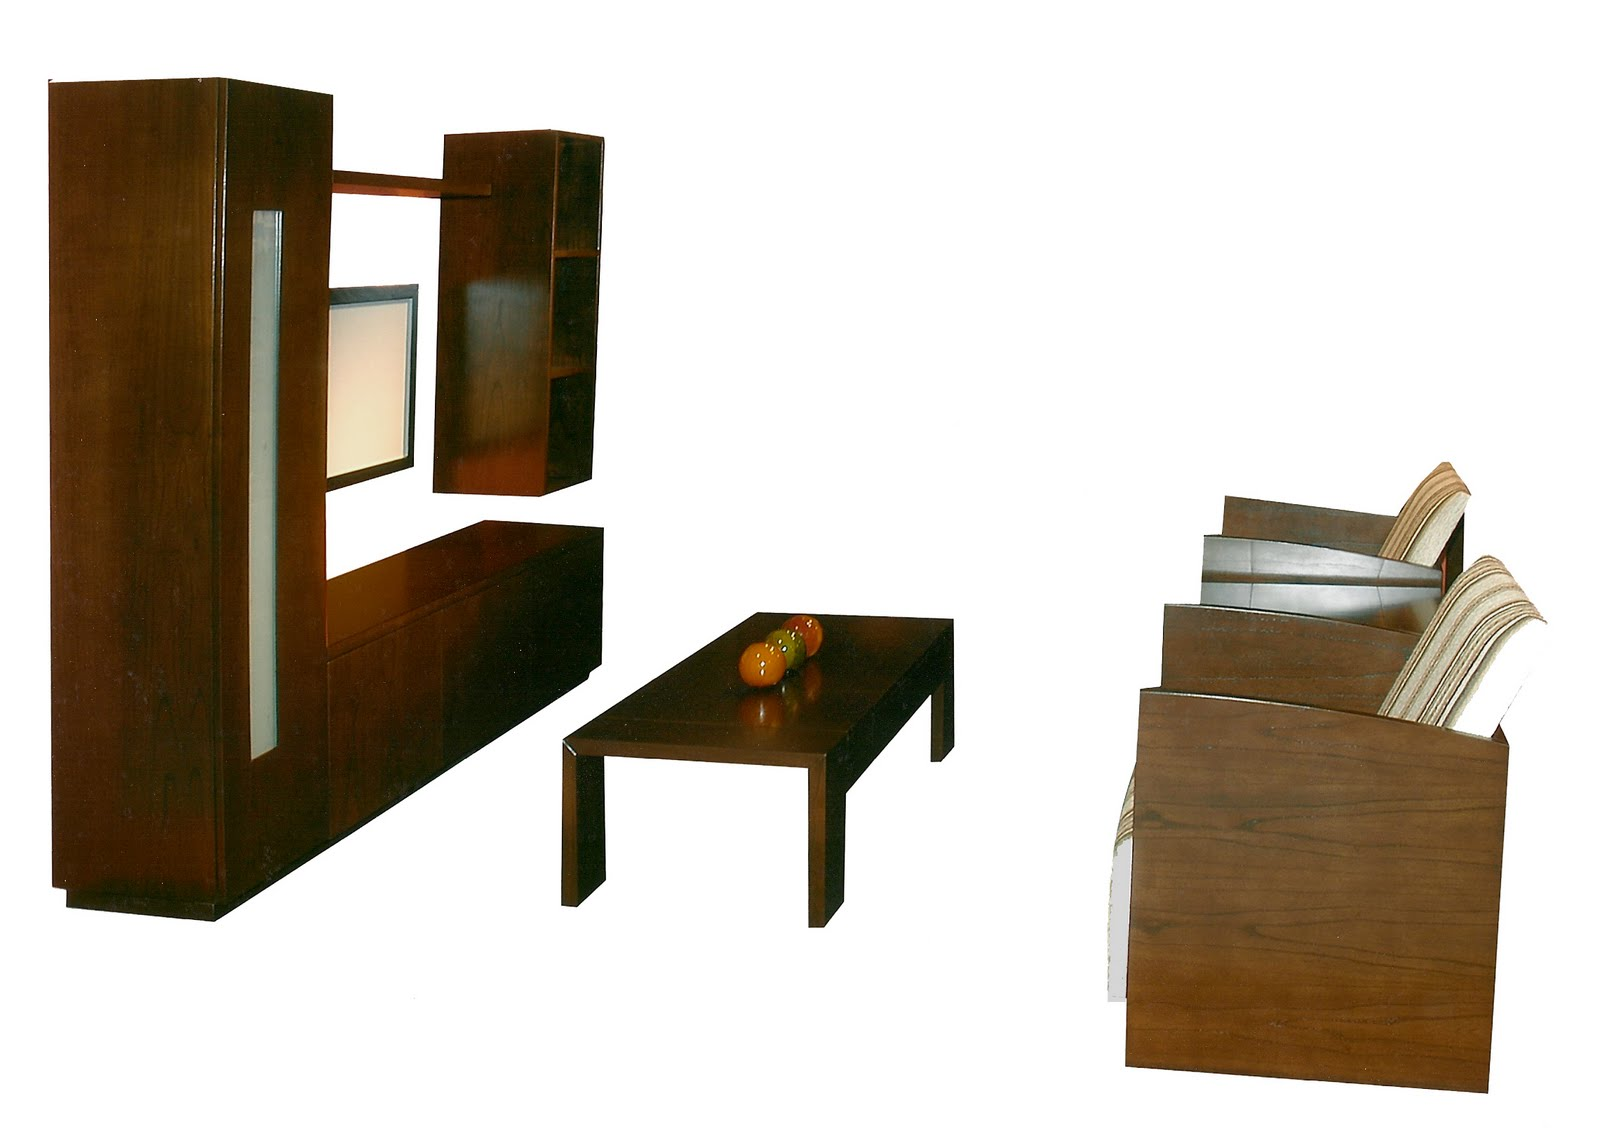 Muebles Organizadores Am Interiores Muebles Modernos And Country Muebles En Gral